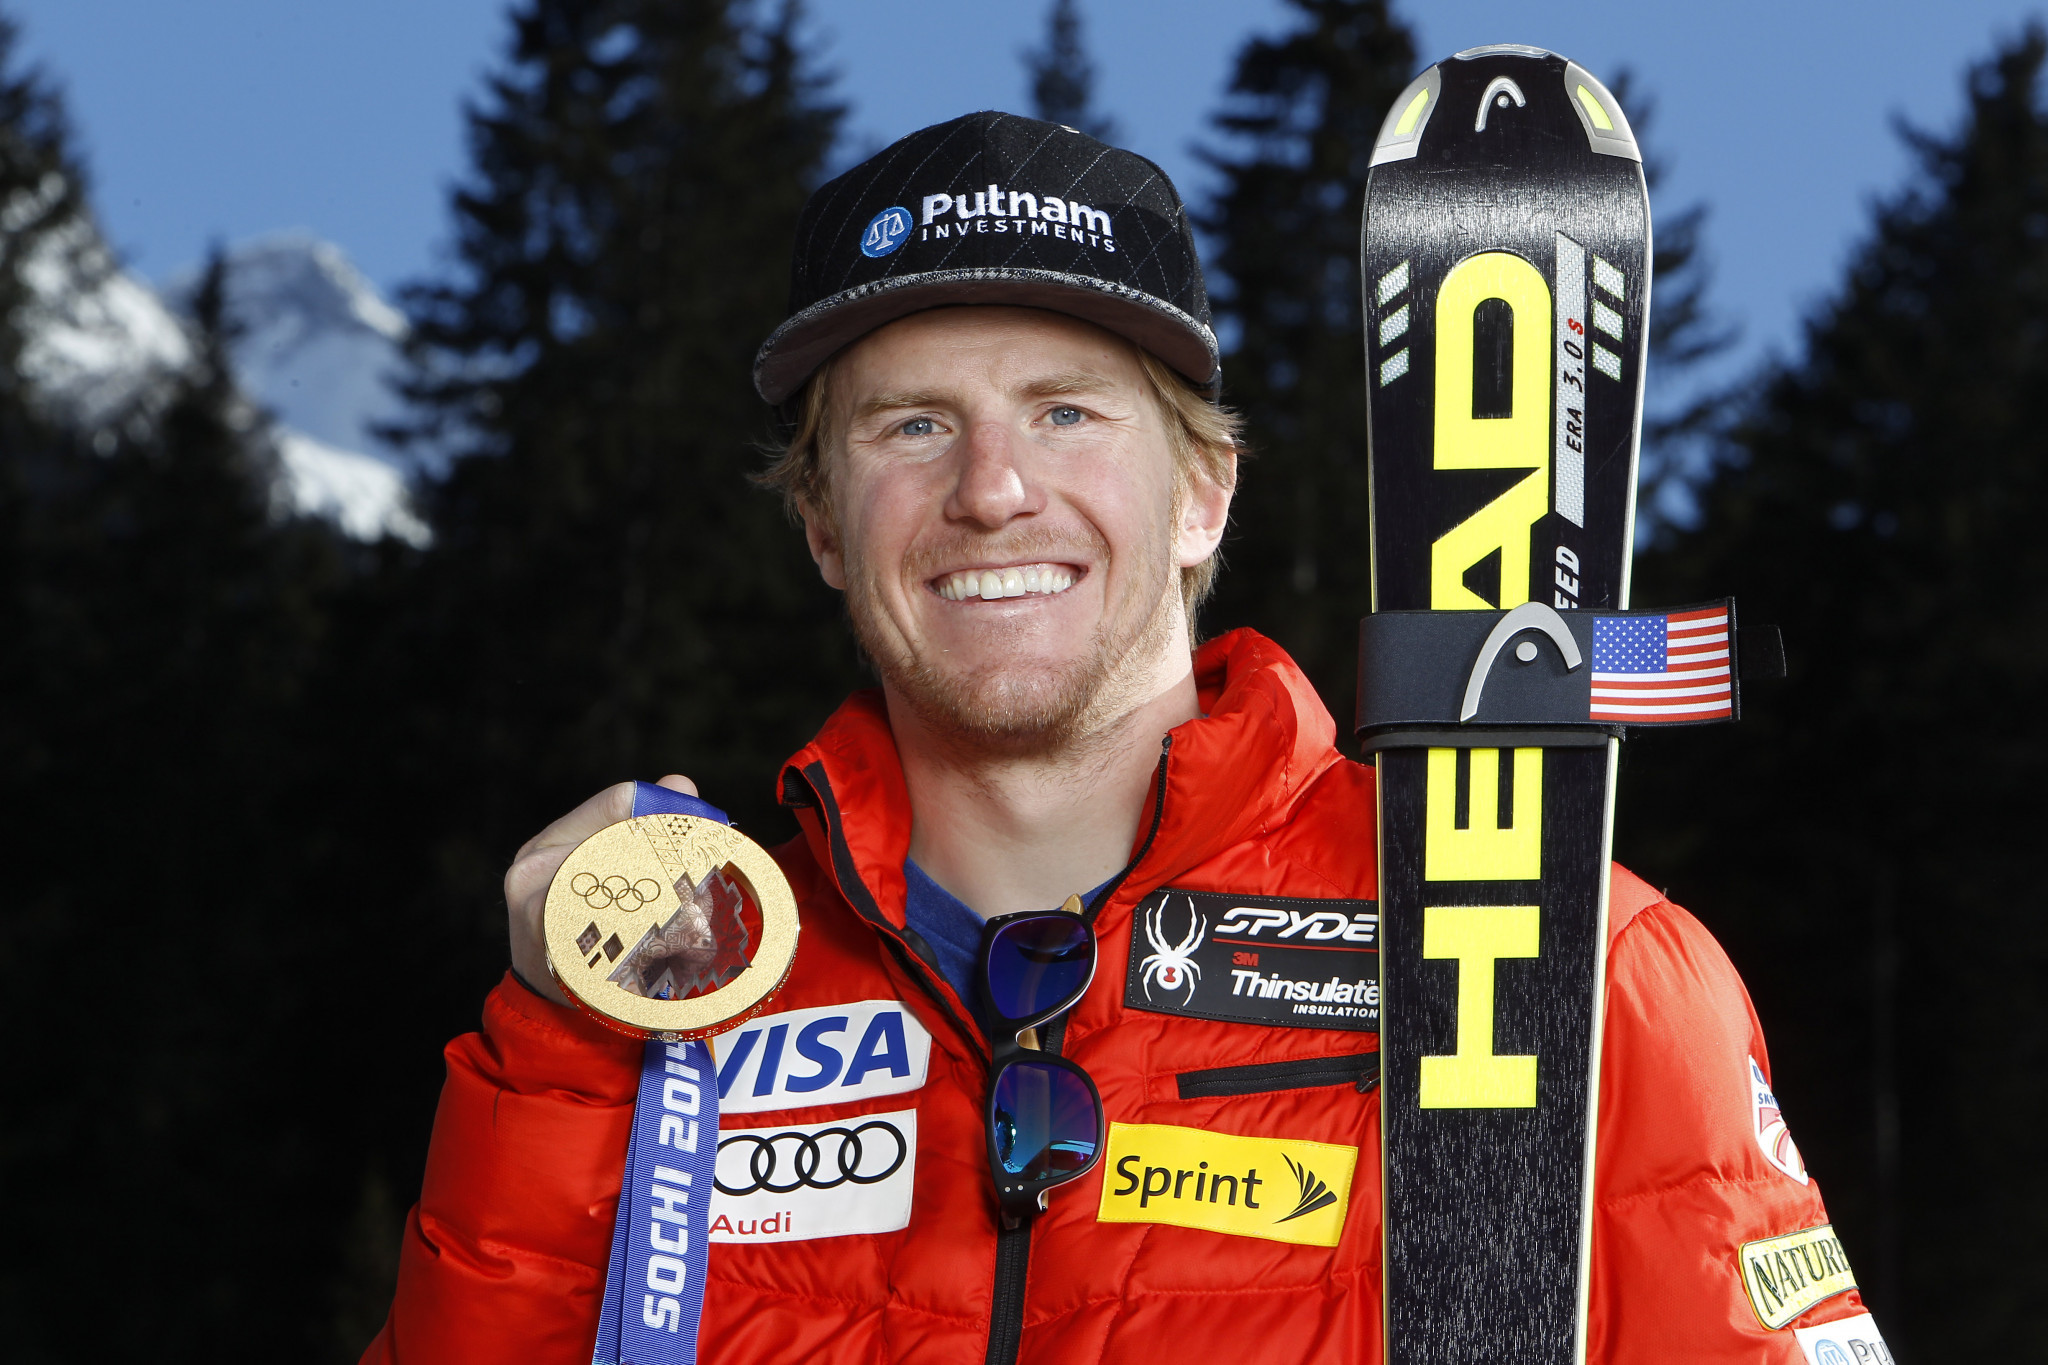 Ted Ligety earned his second Olympic gold medal at Sochi 2014 ©Getty Images